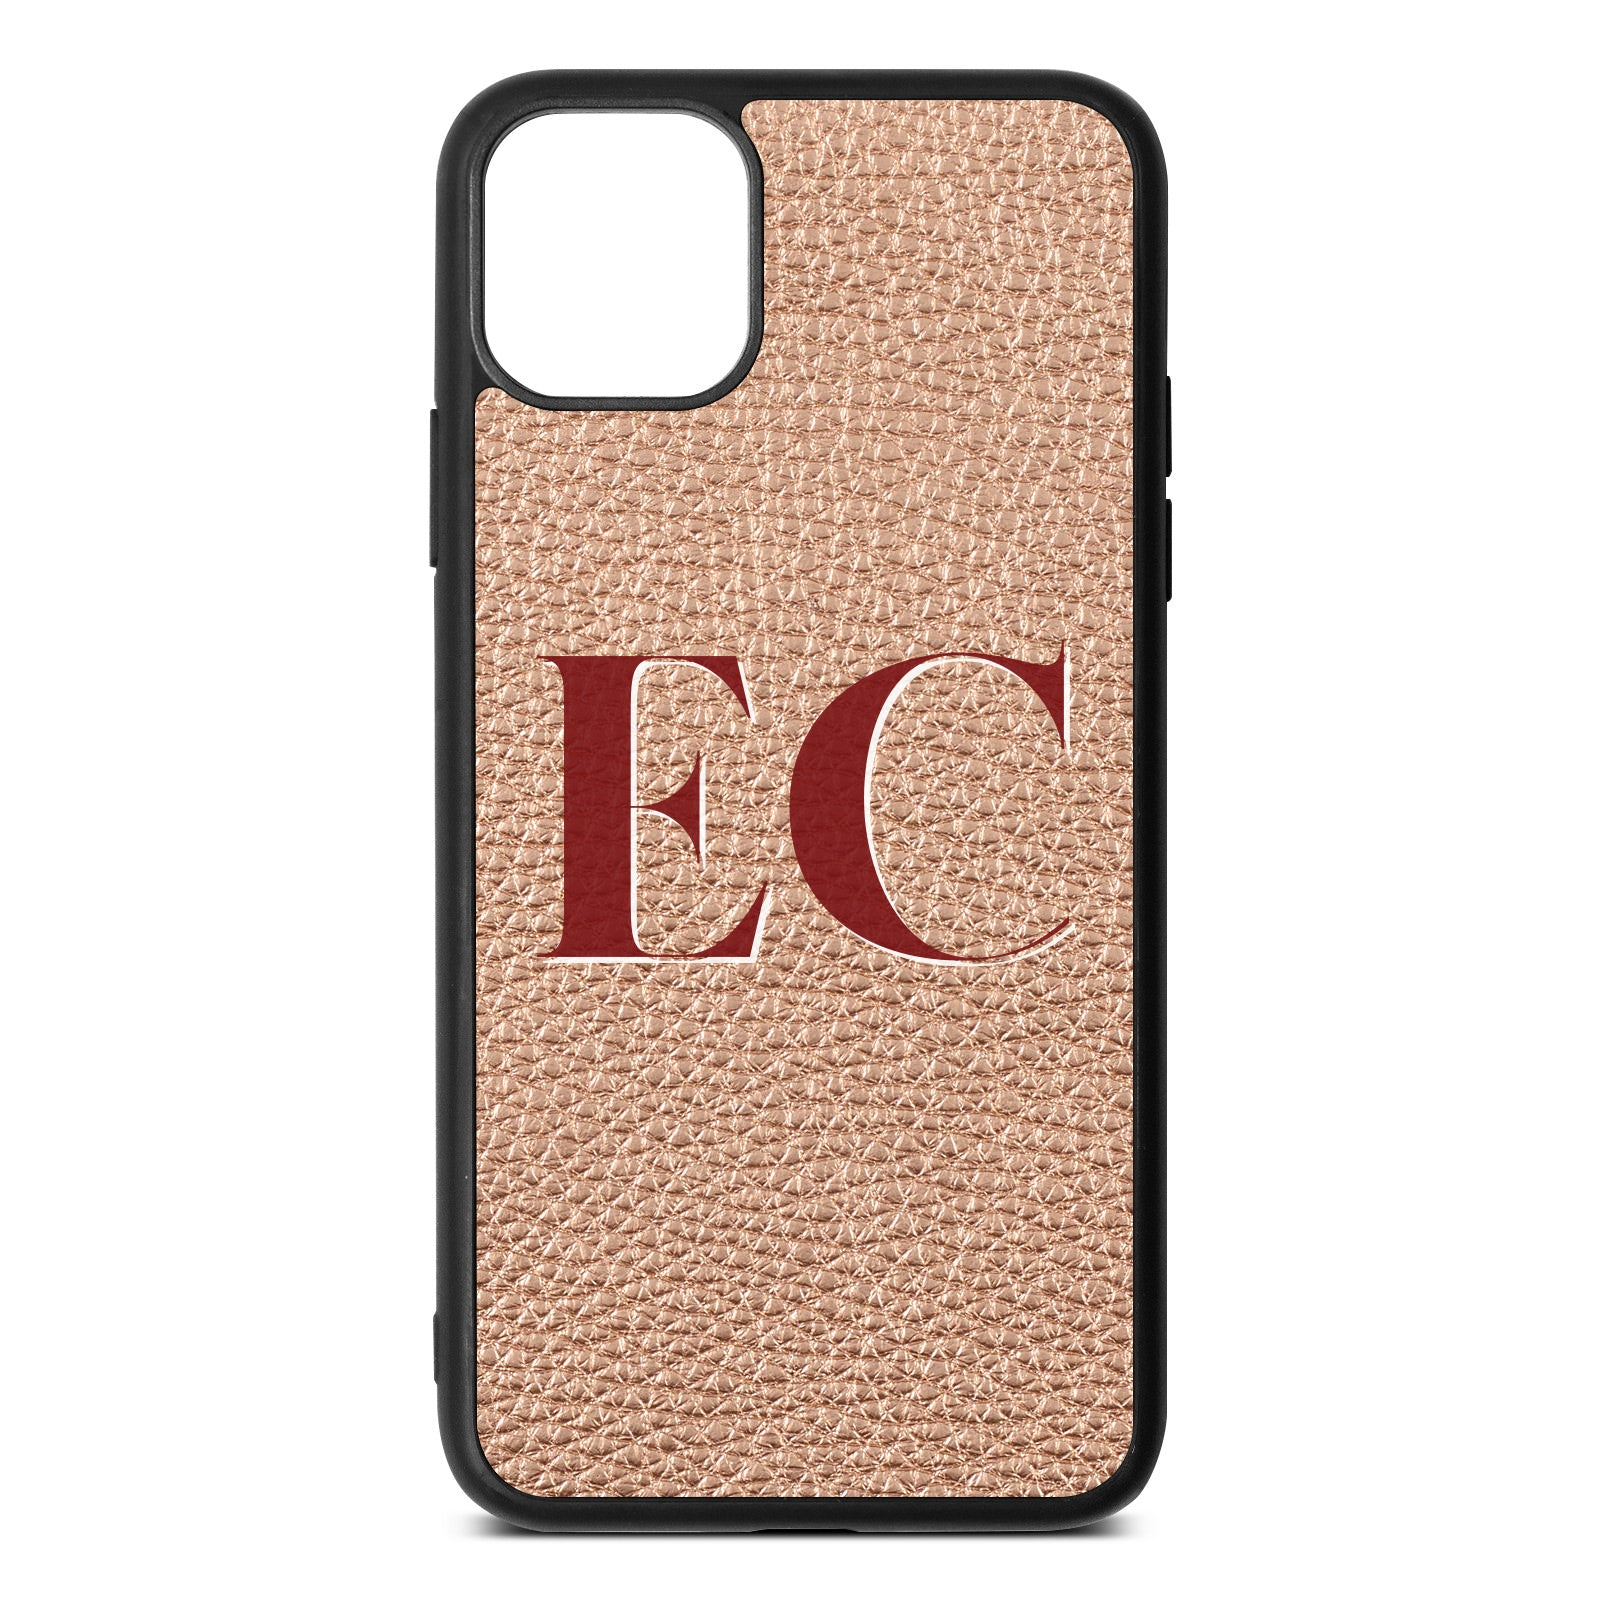 iPhone 11 Pro Max Rose Gold Pebble Leather Case